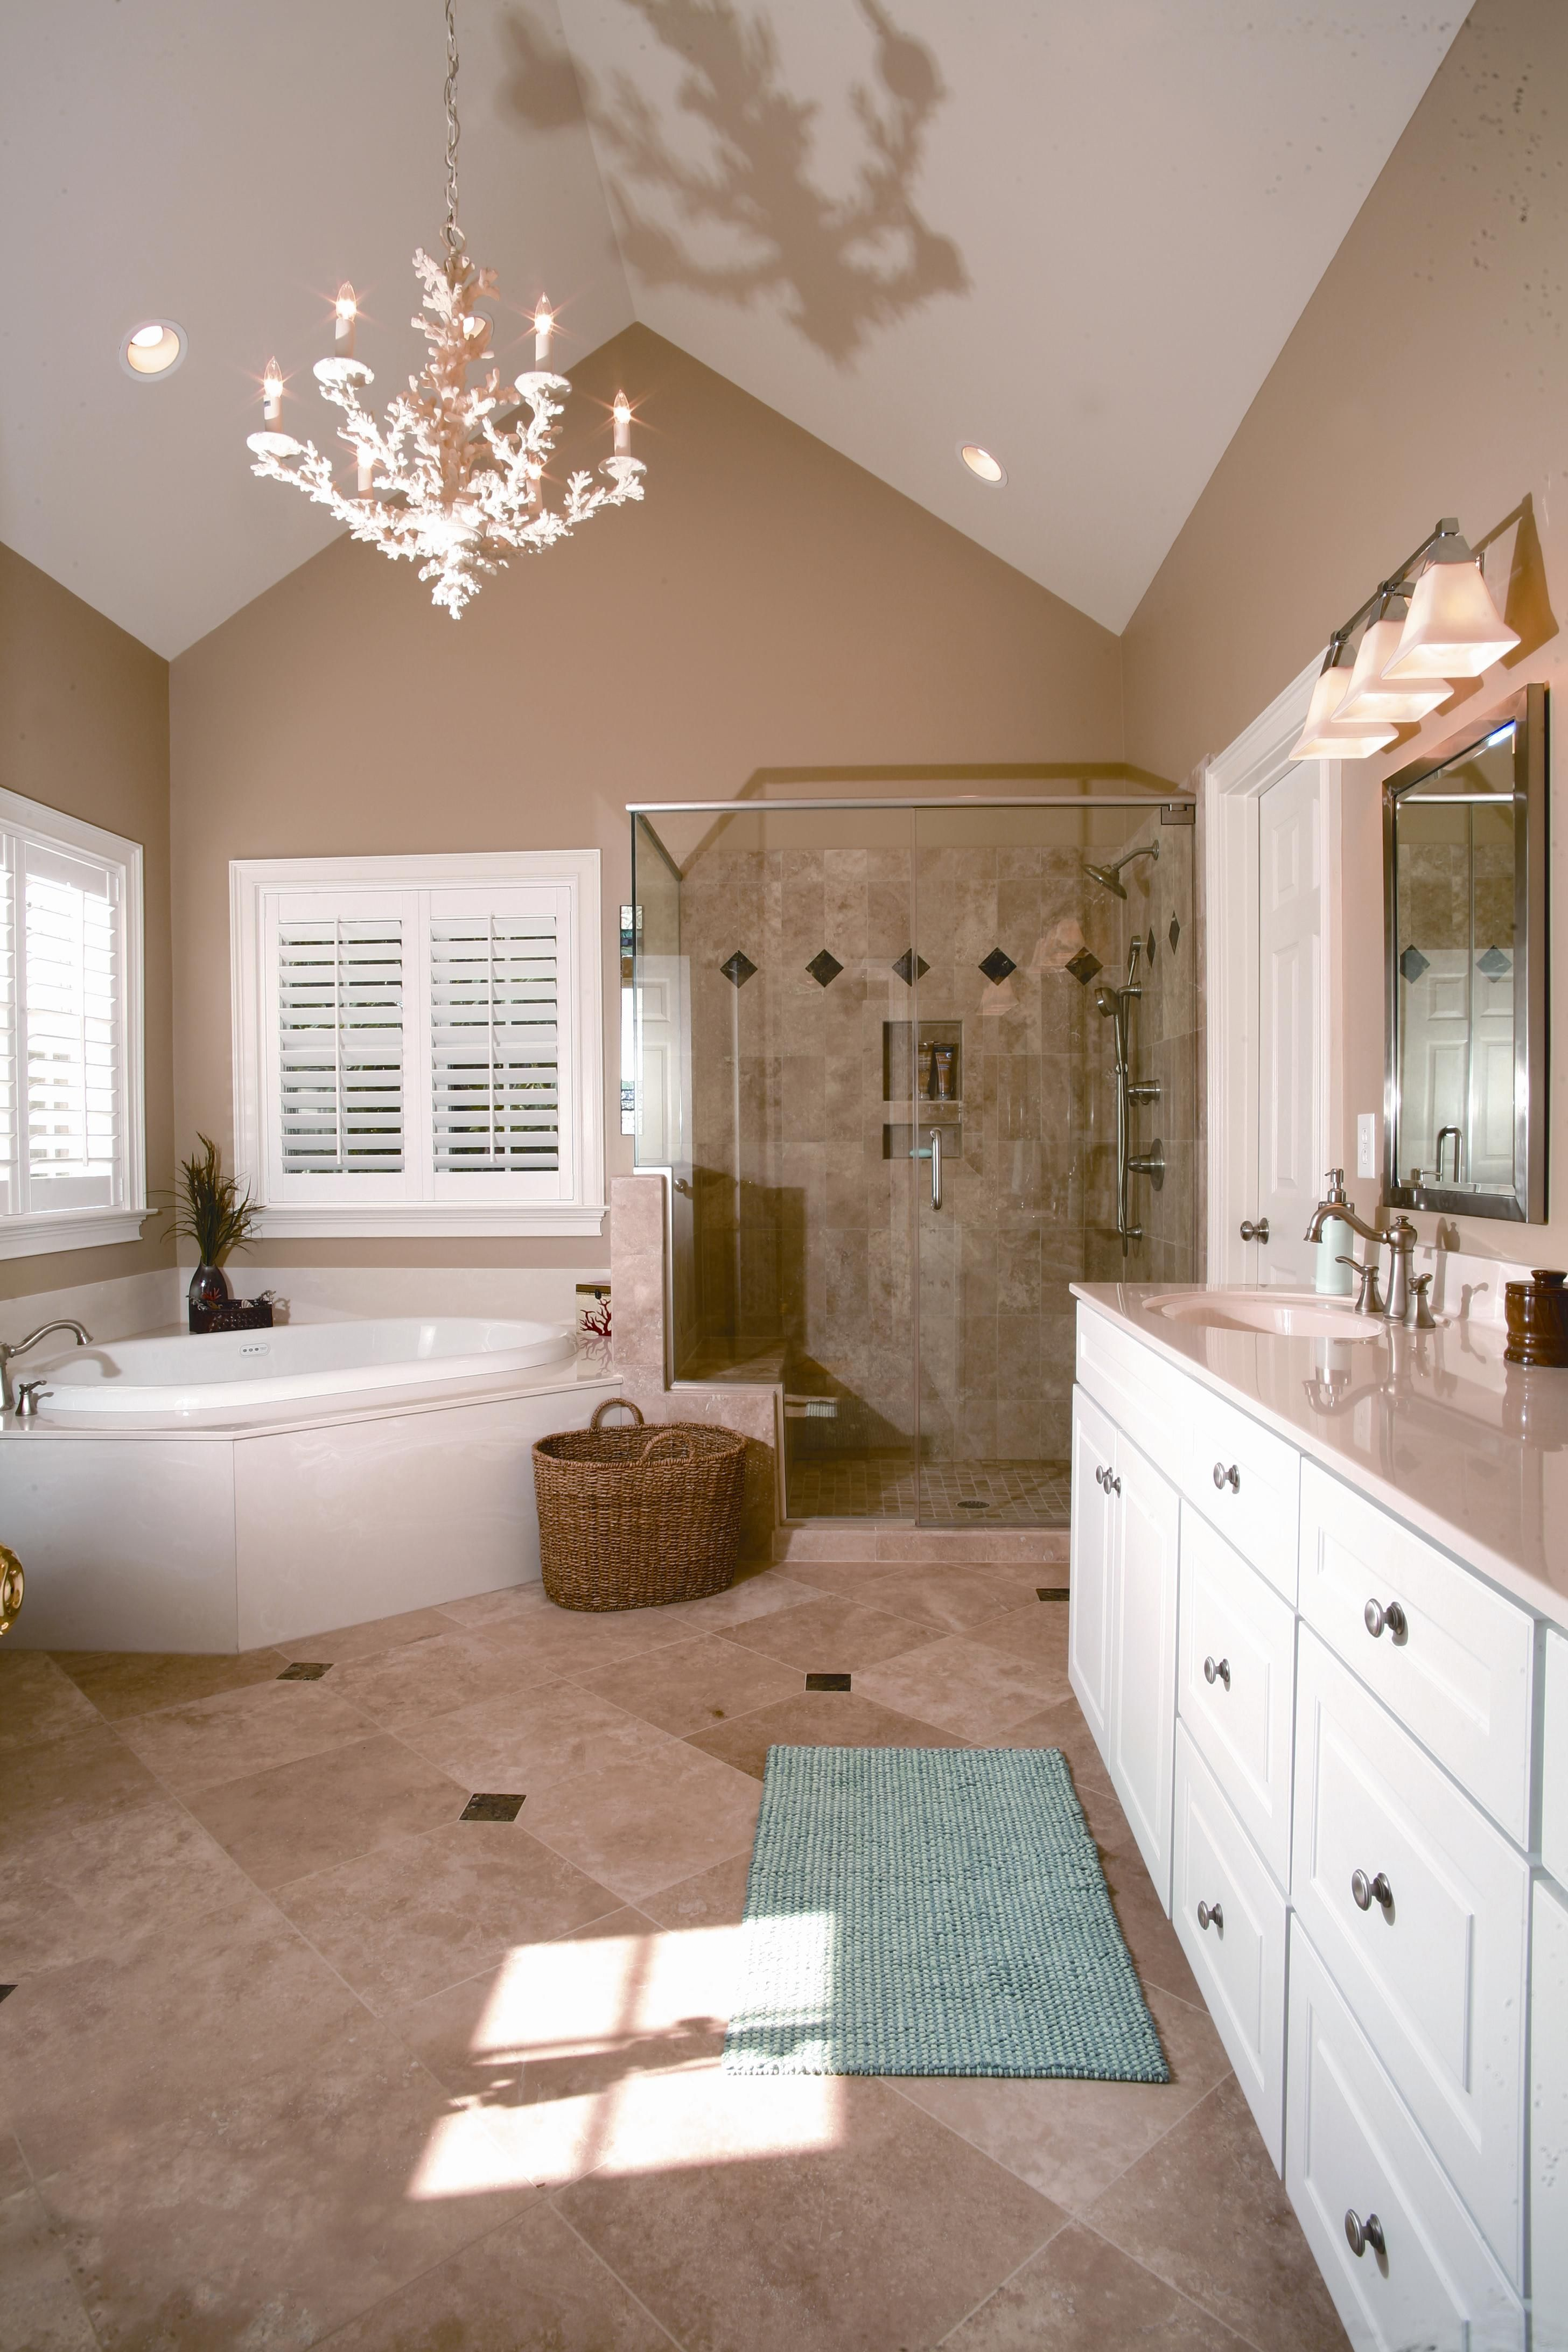 Bathrooms Gallery Statewide Remodeling Bathrooms Remodel Home Remodeling Remodel